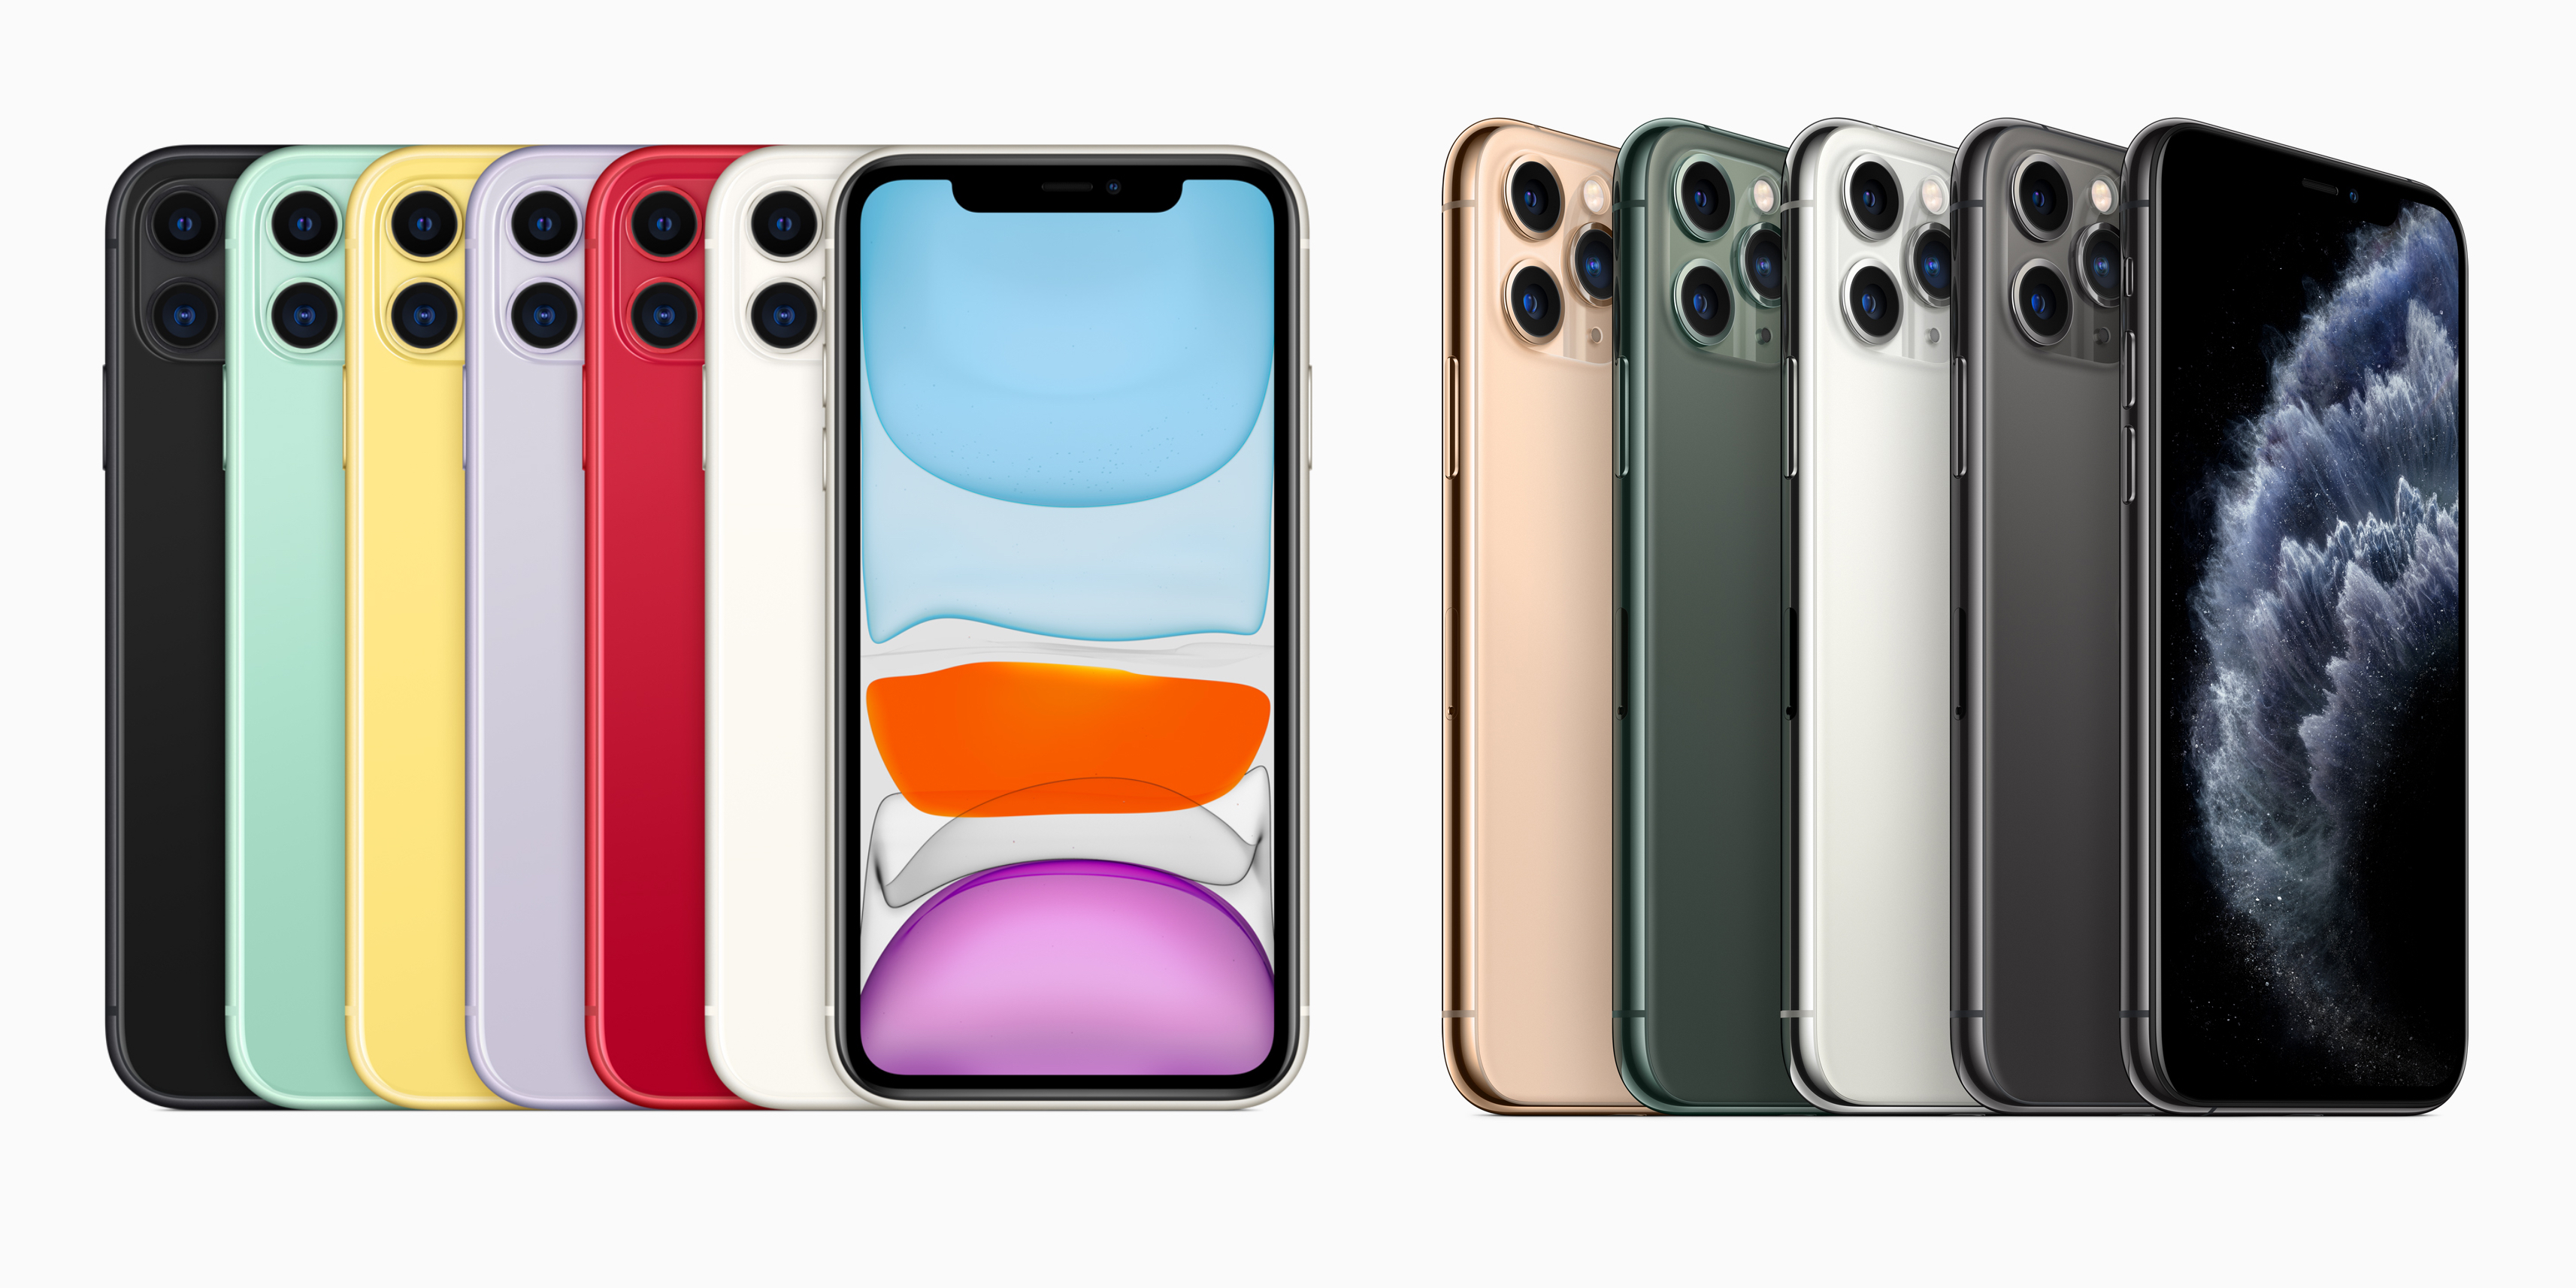 Iphone 11 And Iphone 11 Pro Now Available To Order Starting At 699 9to5mac